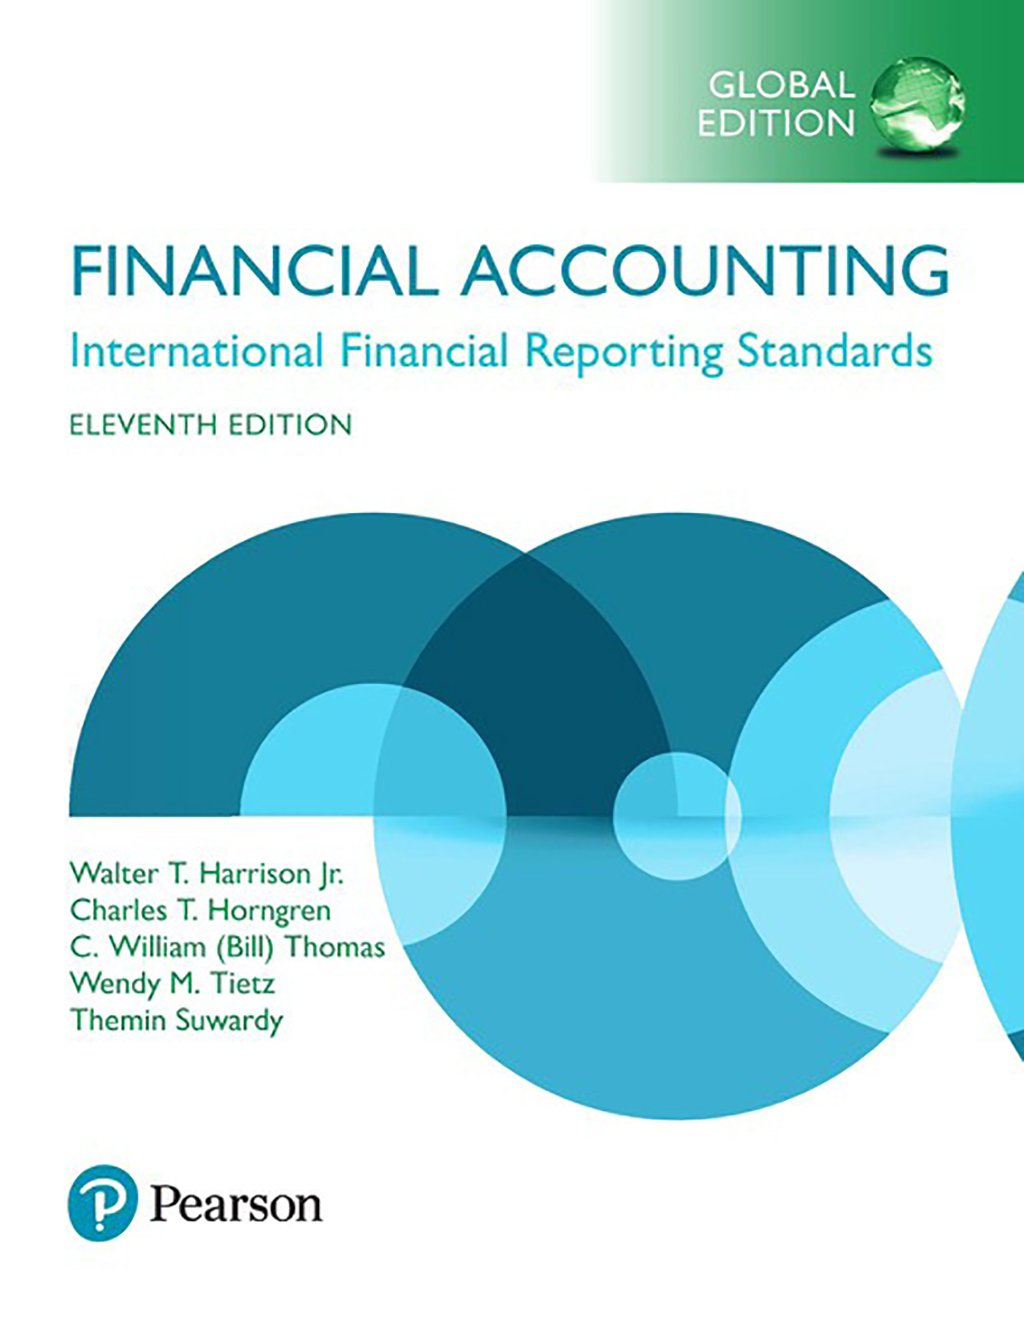 Financial Accounting: International Financial Reporting Standards, Global Edition MyLab Accounting, 11th Edition